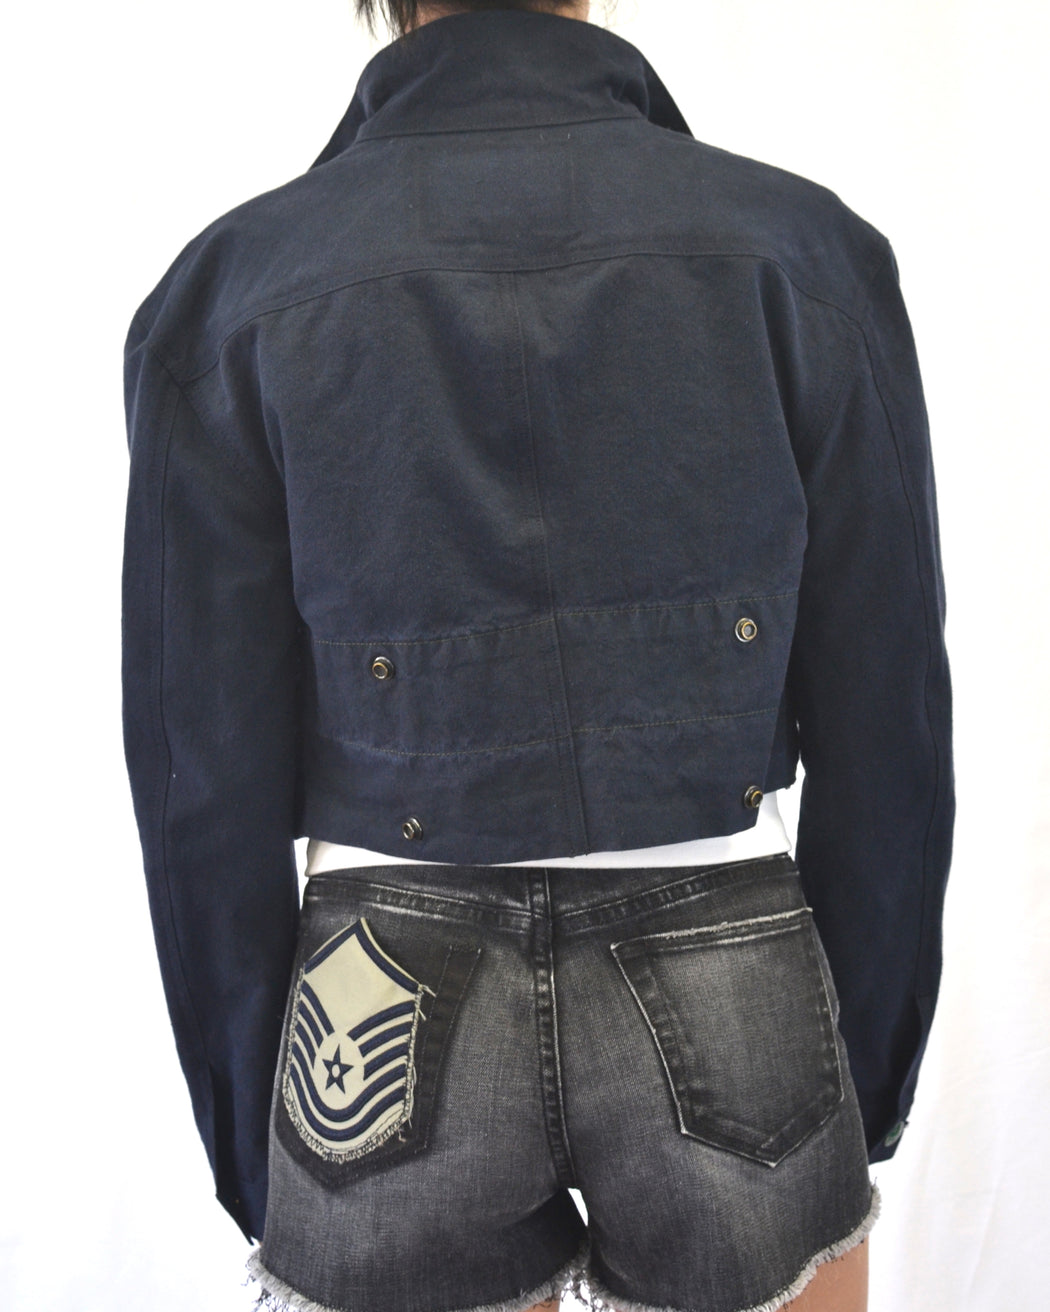 Up-Cycled and Recycled Cropped Army Tent Jacket -Natural Indigo Dyed